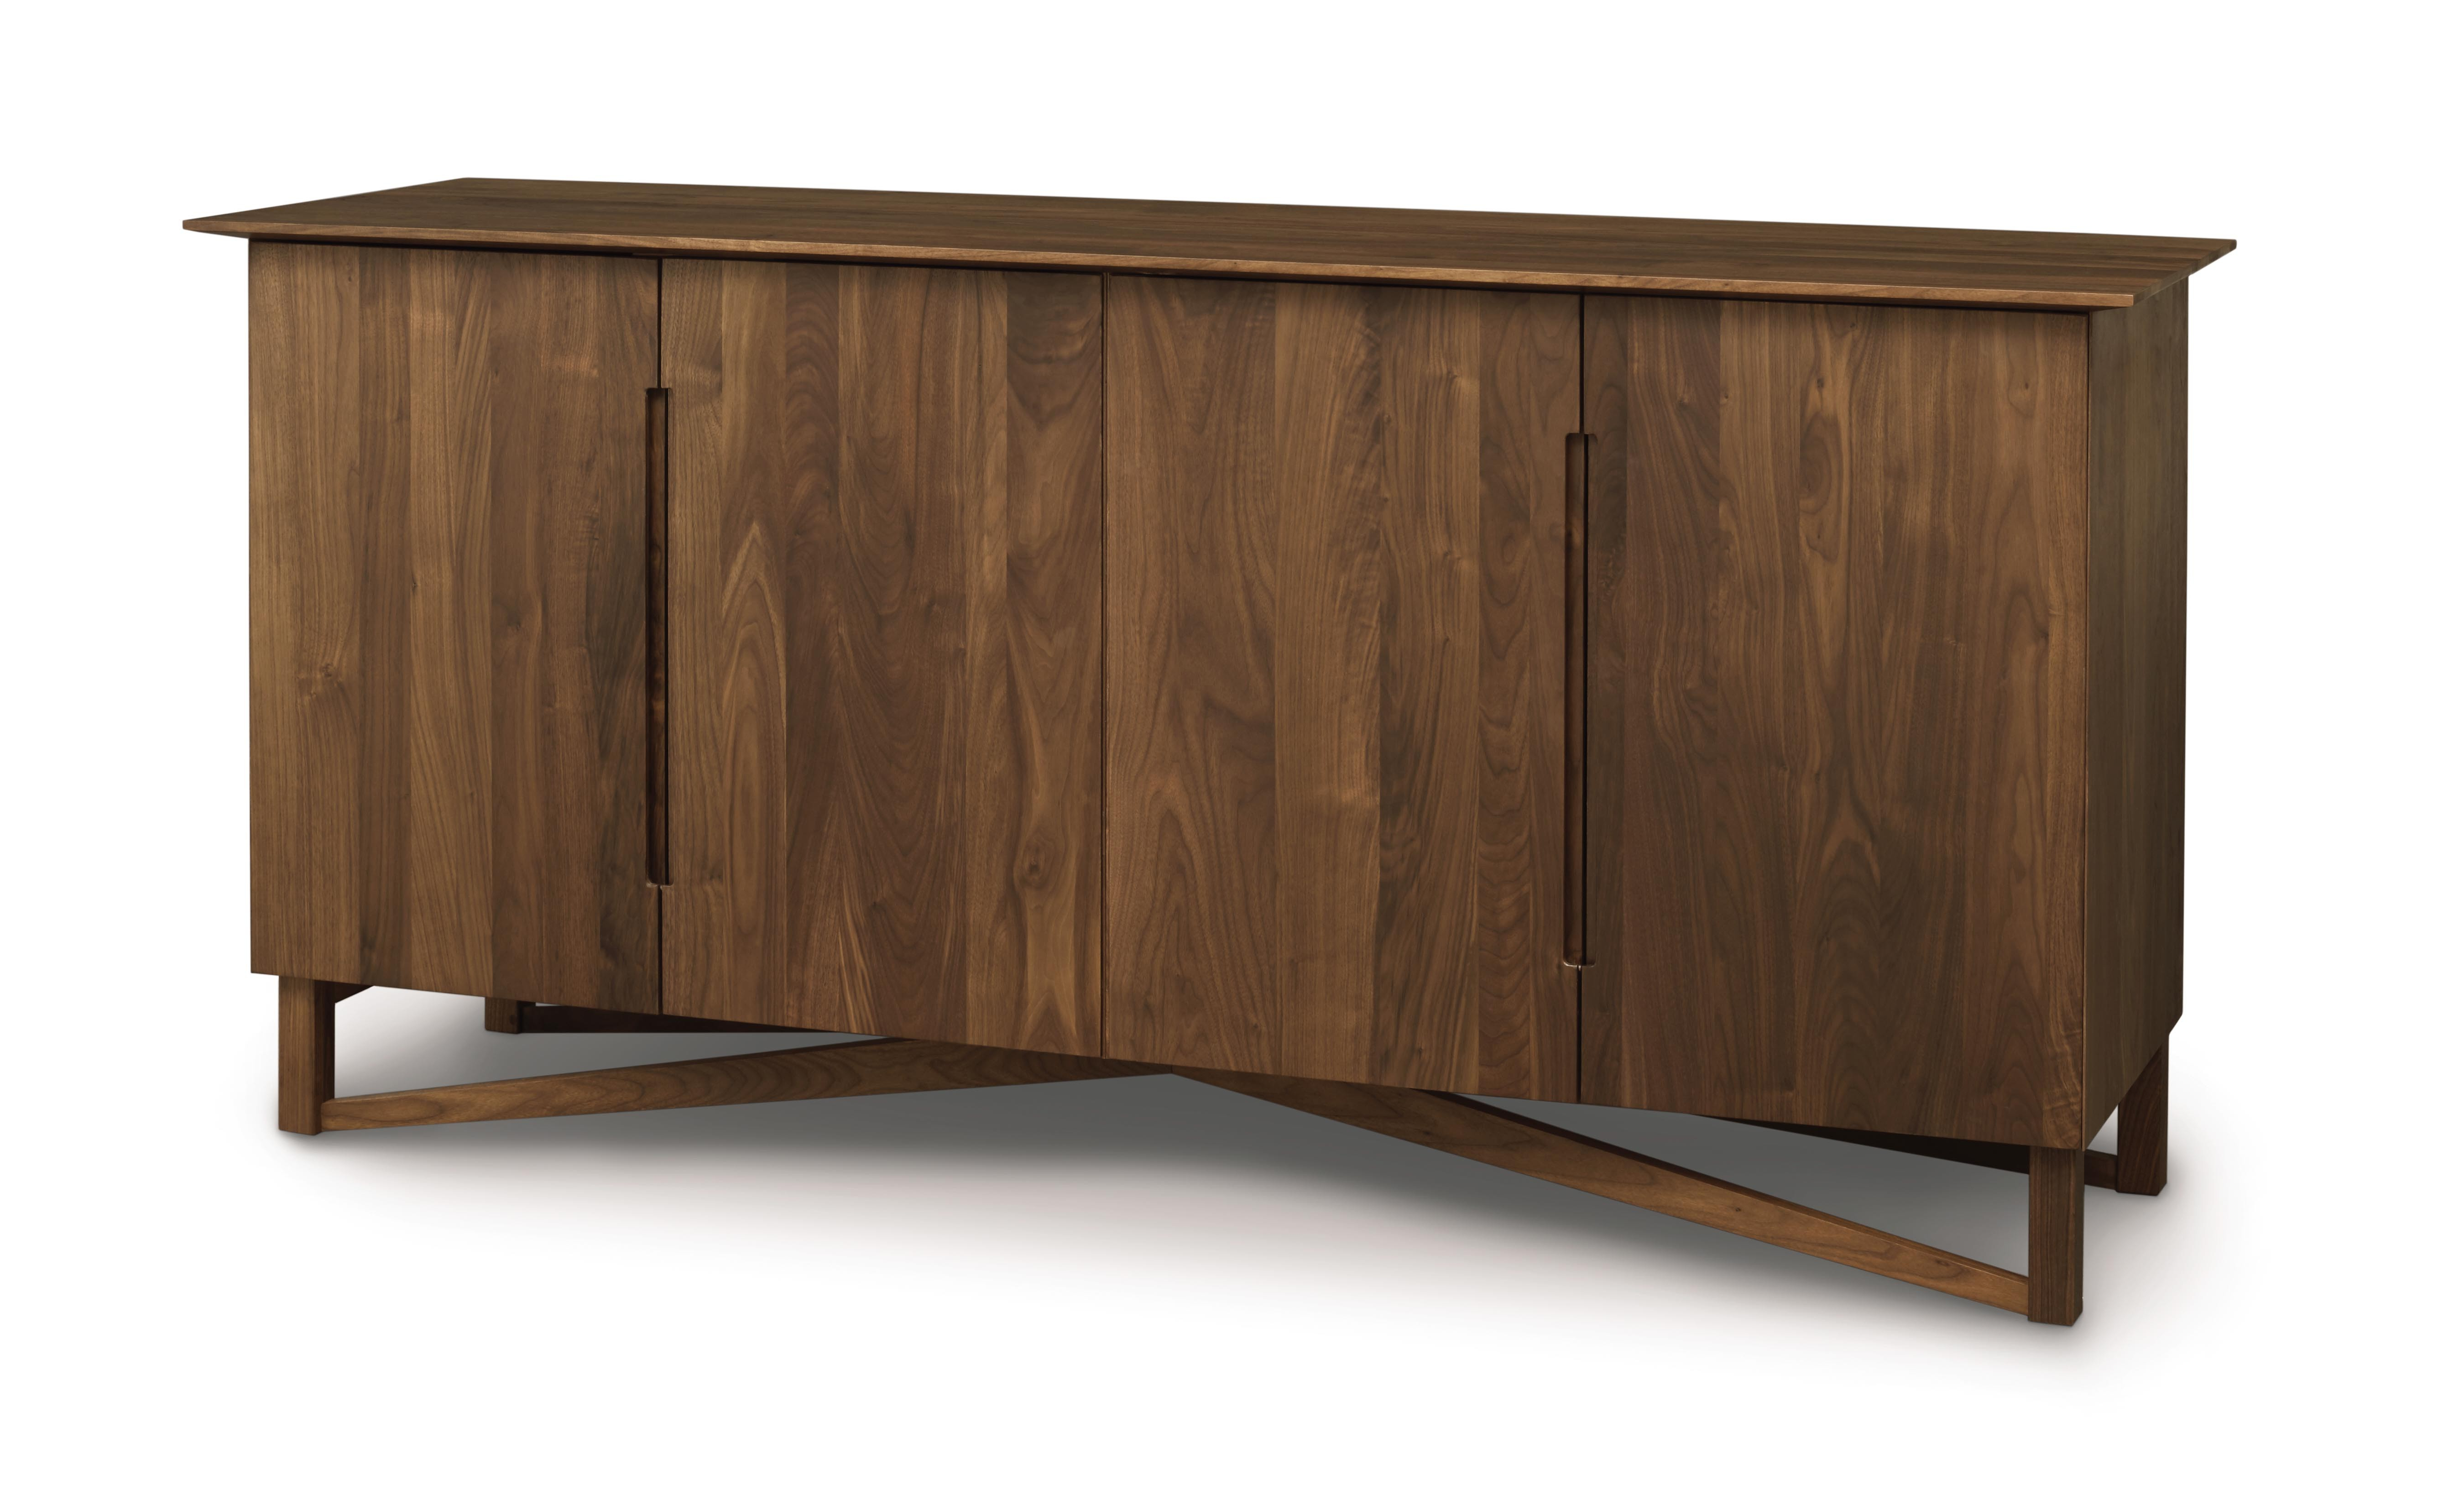 Copeland Furniture : Natural Hardwood Furniture From Vermont Pertaining To Buffets With Cherry Finish (View 14 of 20)